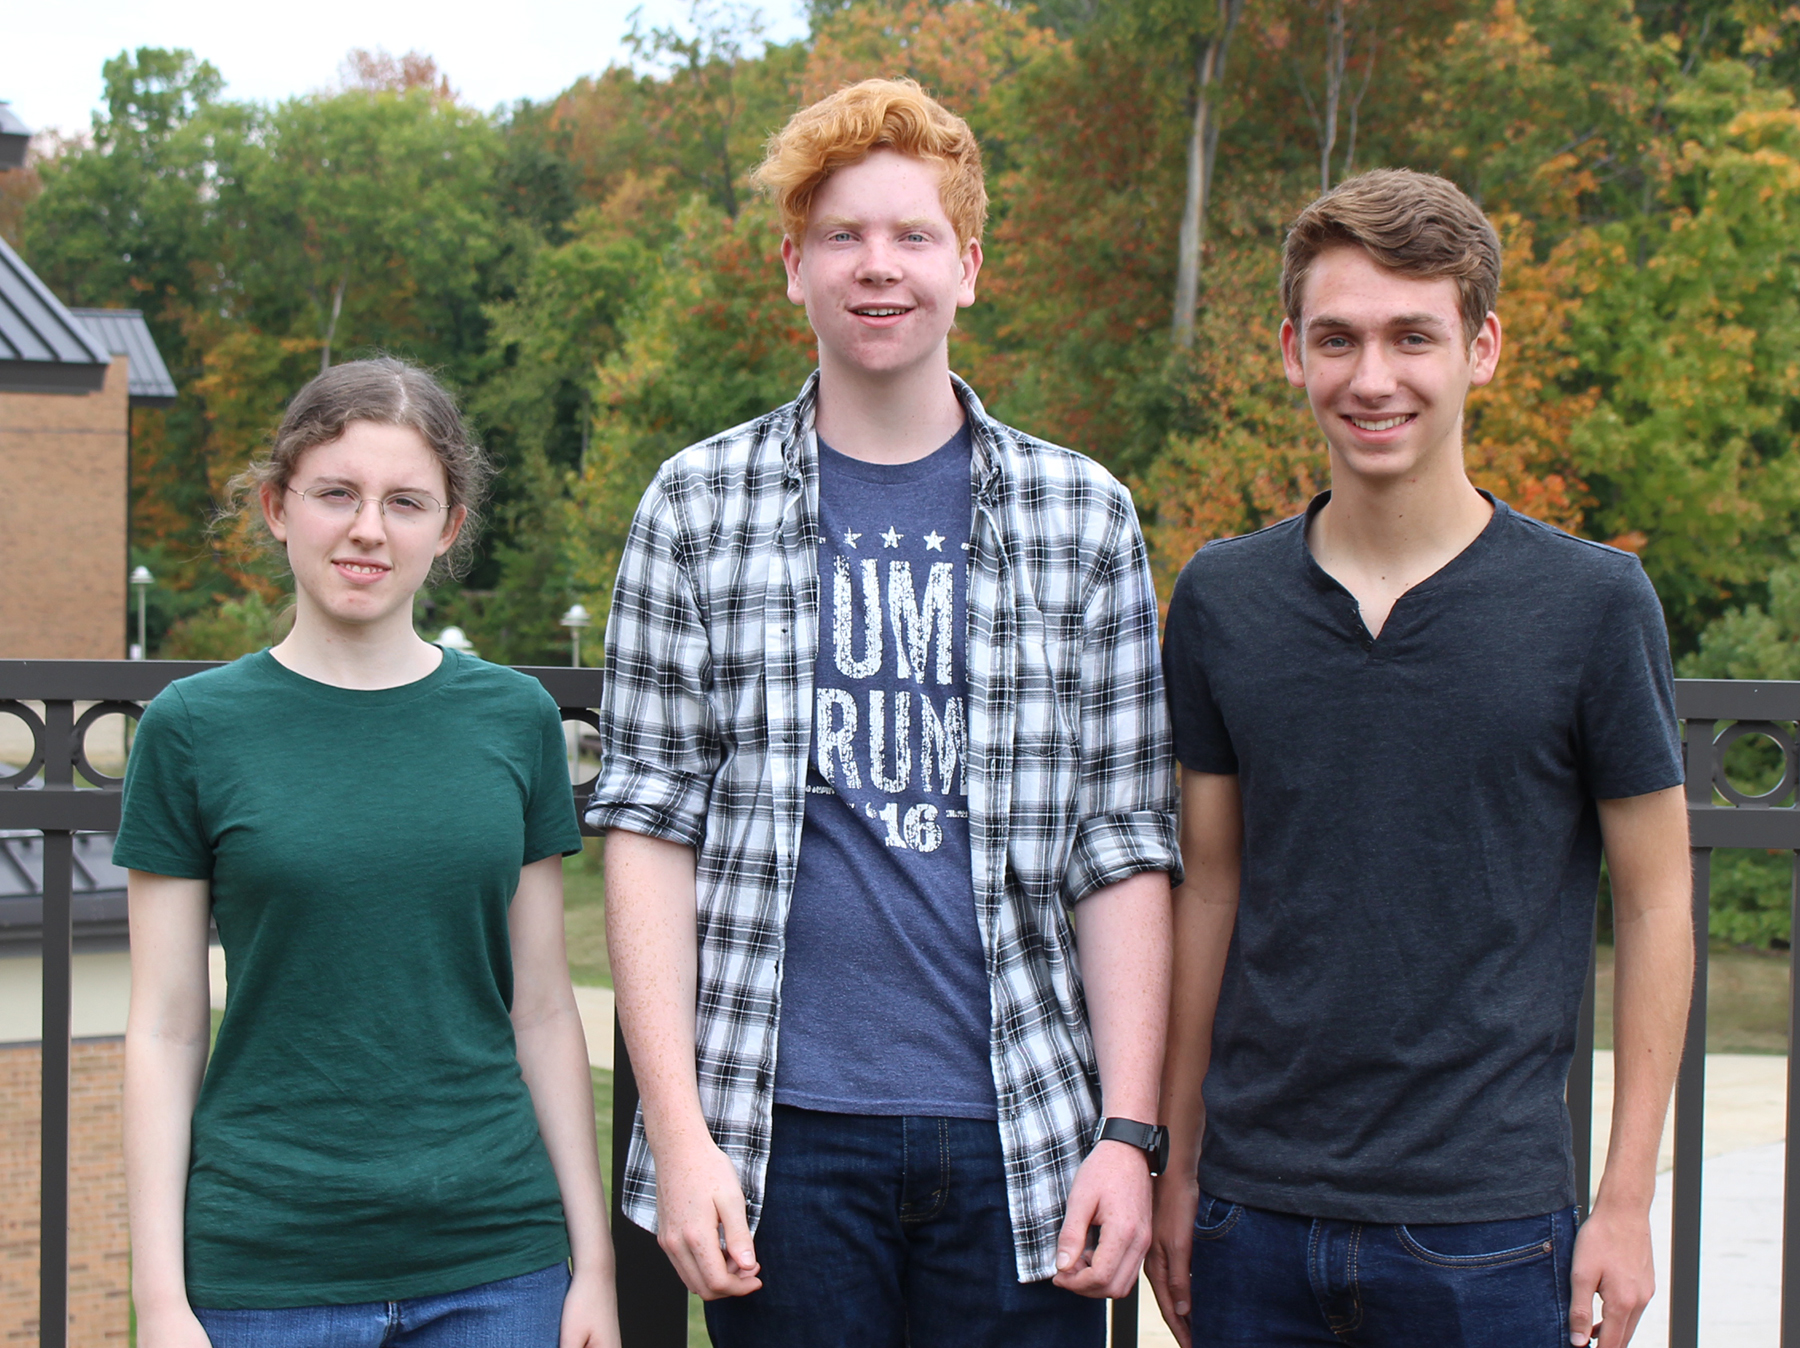 Pictured from left are Clara Vorndran, Ben Lewton and Larkin Cleland